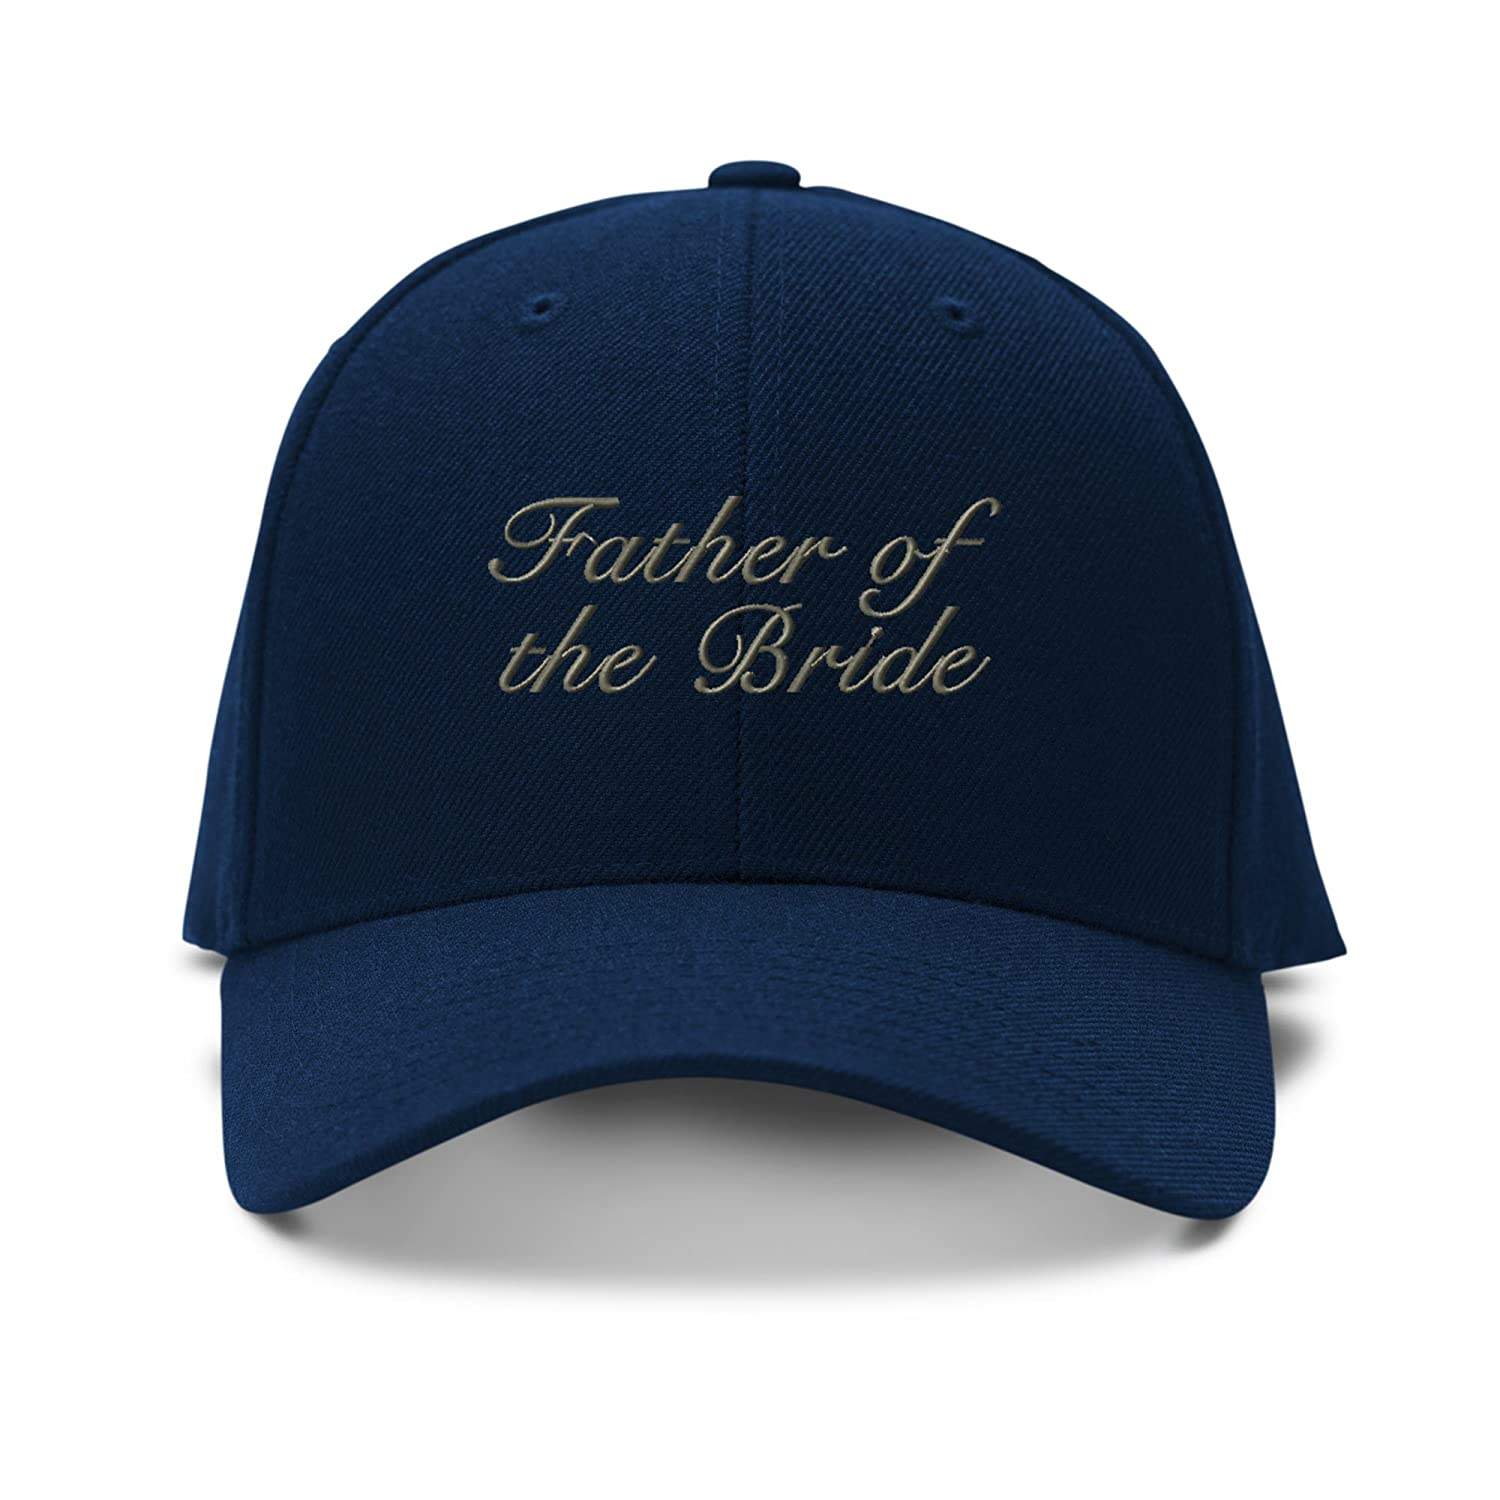 Amazon.com  Speedy Pros Father of The Bride Married Embroidery Adjustable  Structured Baseball Hat Navy  Clothing 963e1d89951d